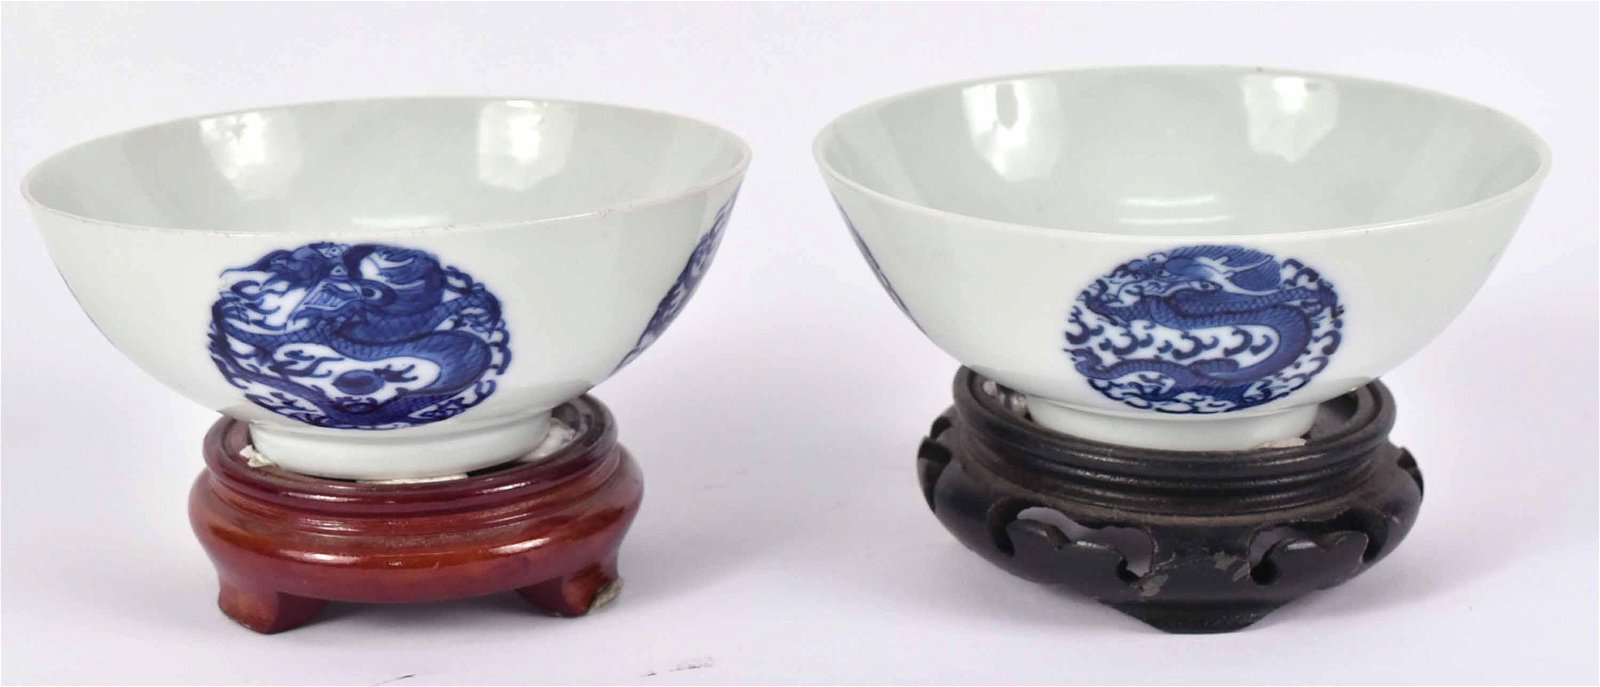 Two Chinese Dragon-Decorated Porcelain Bowls